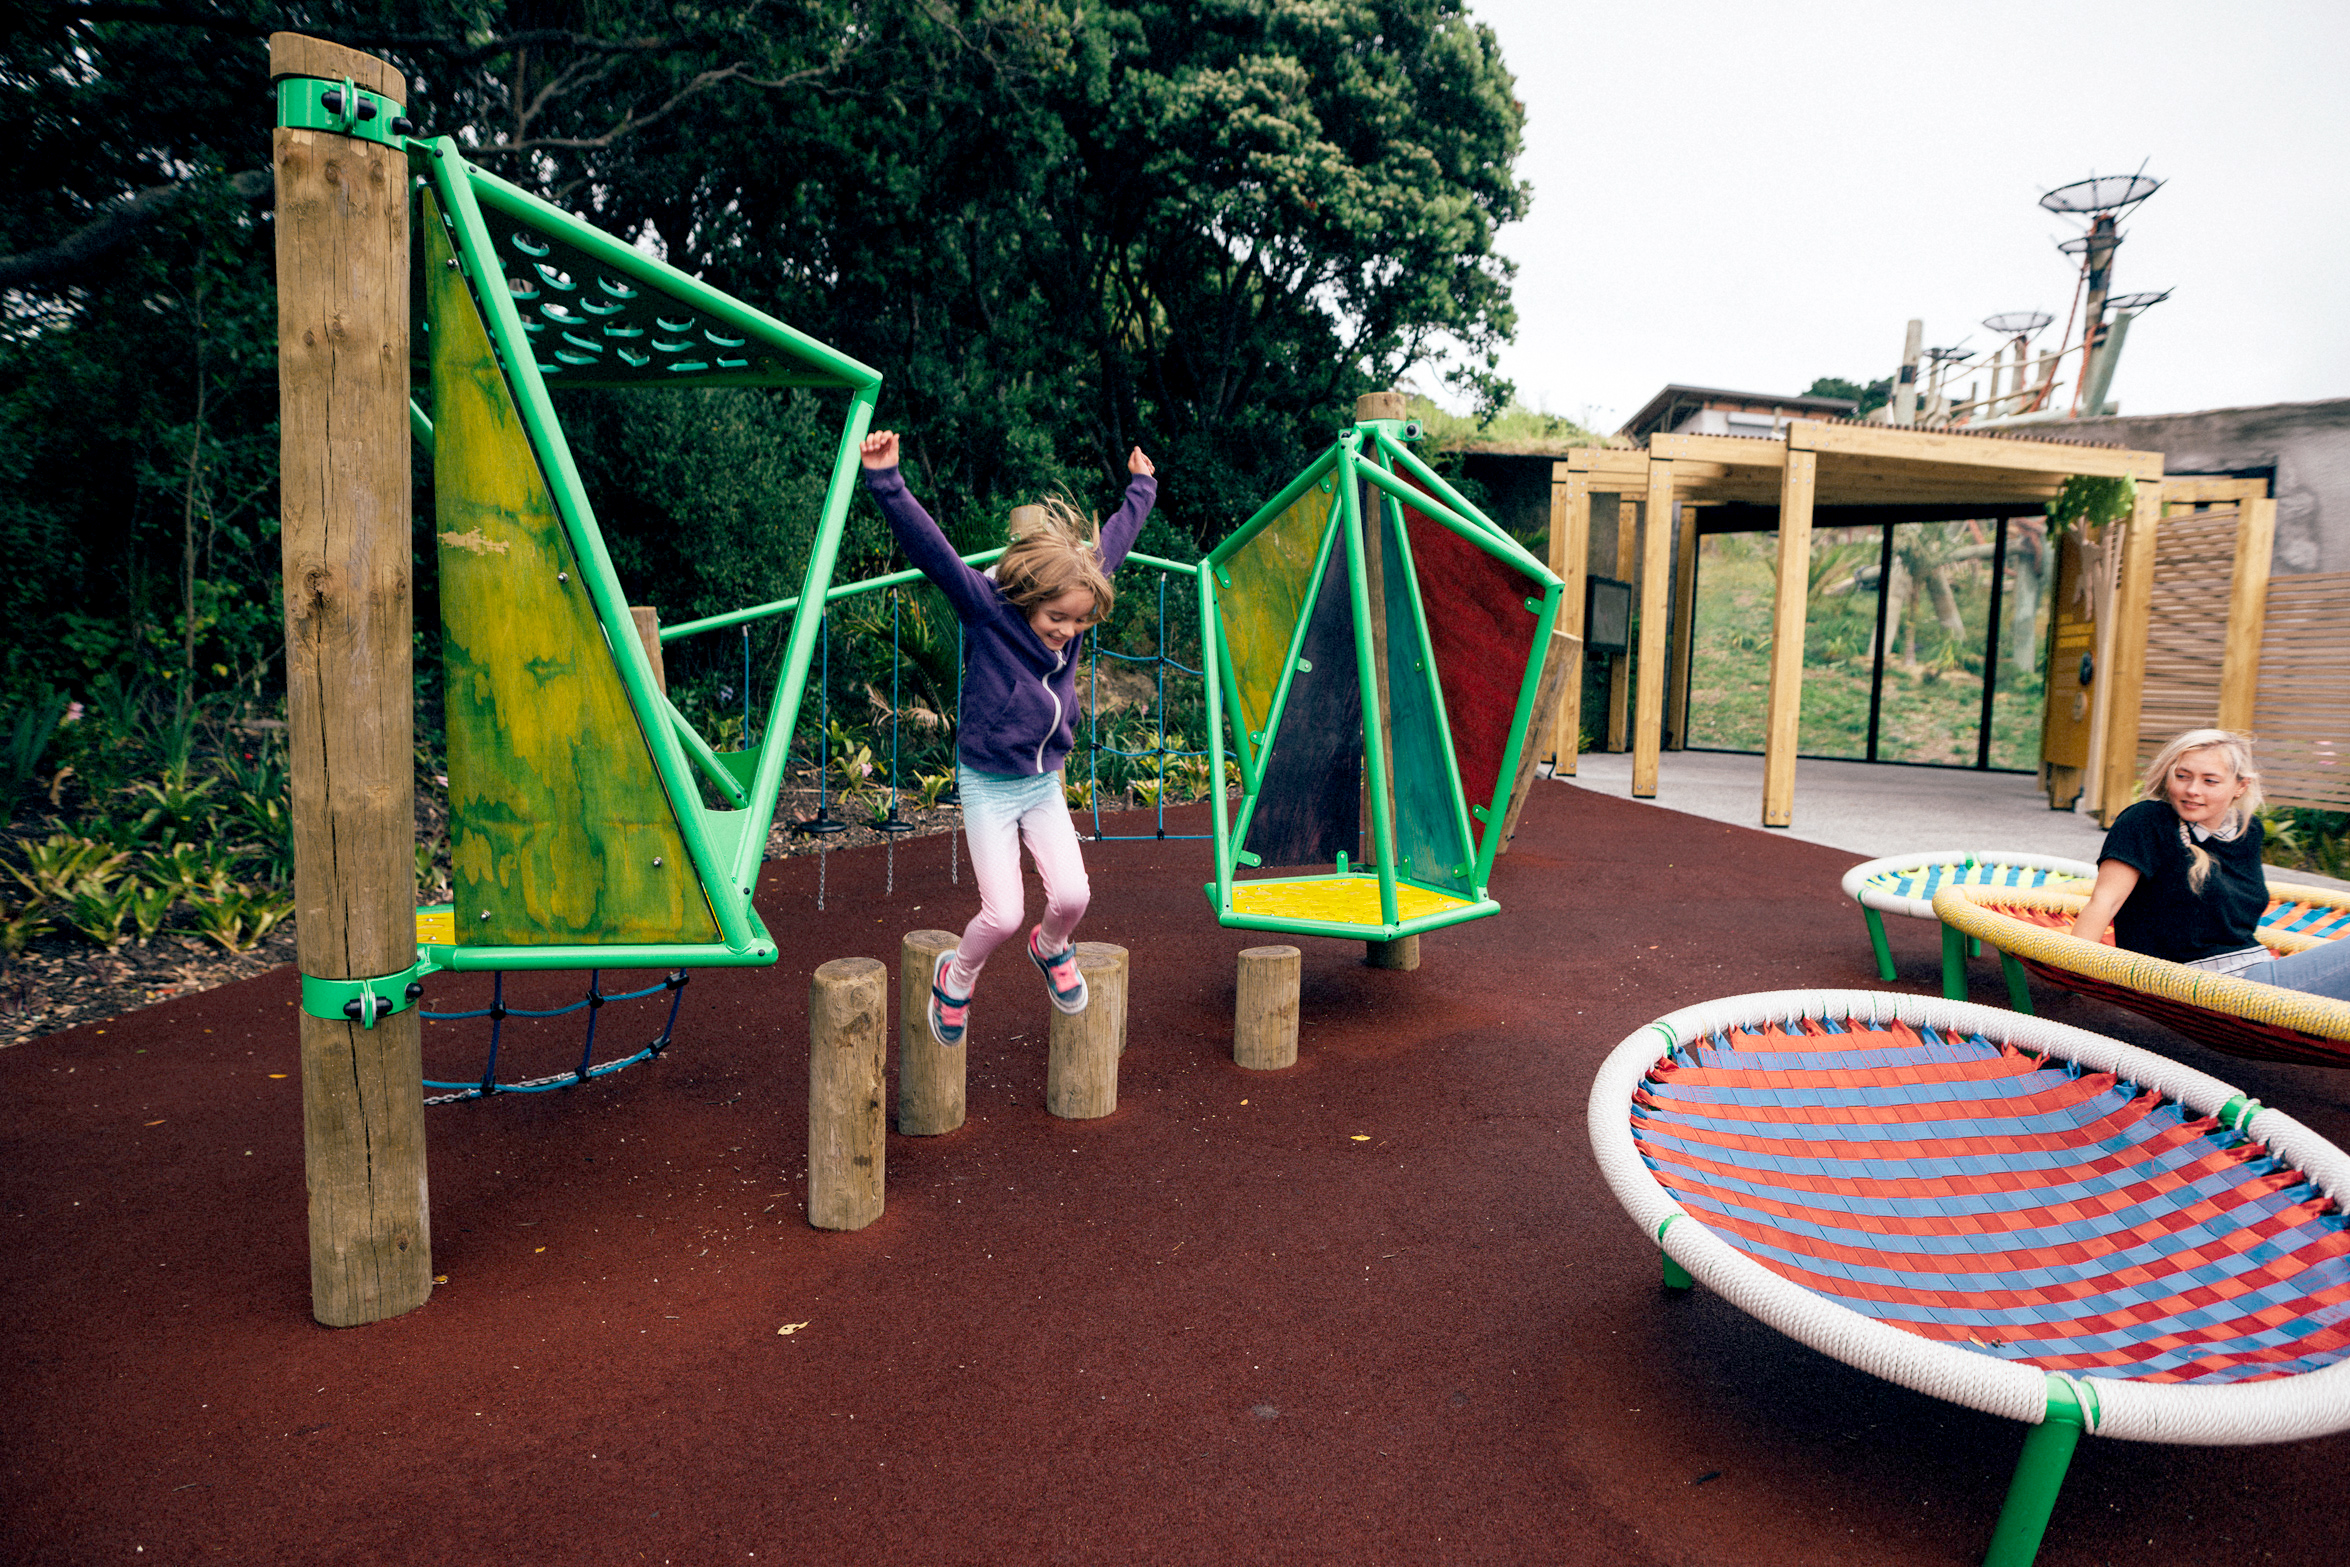 Custom playspace with collaborators Te Mahi mirrors the chimps' environment.